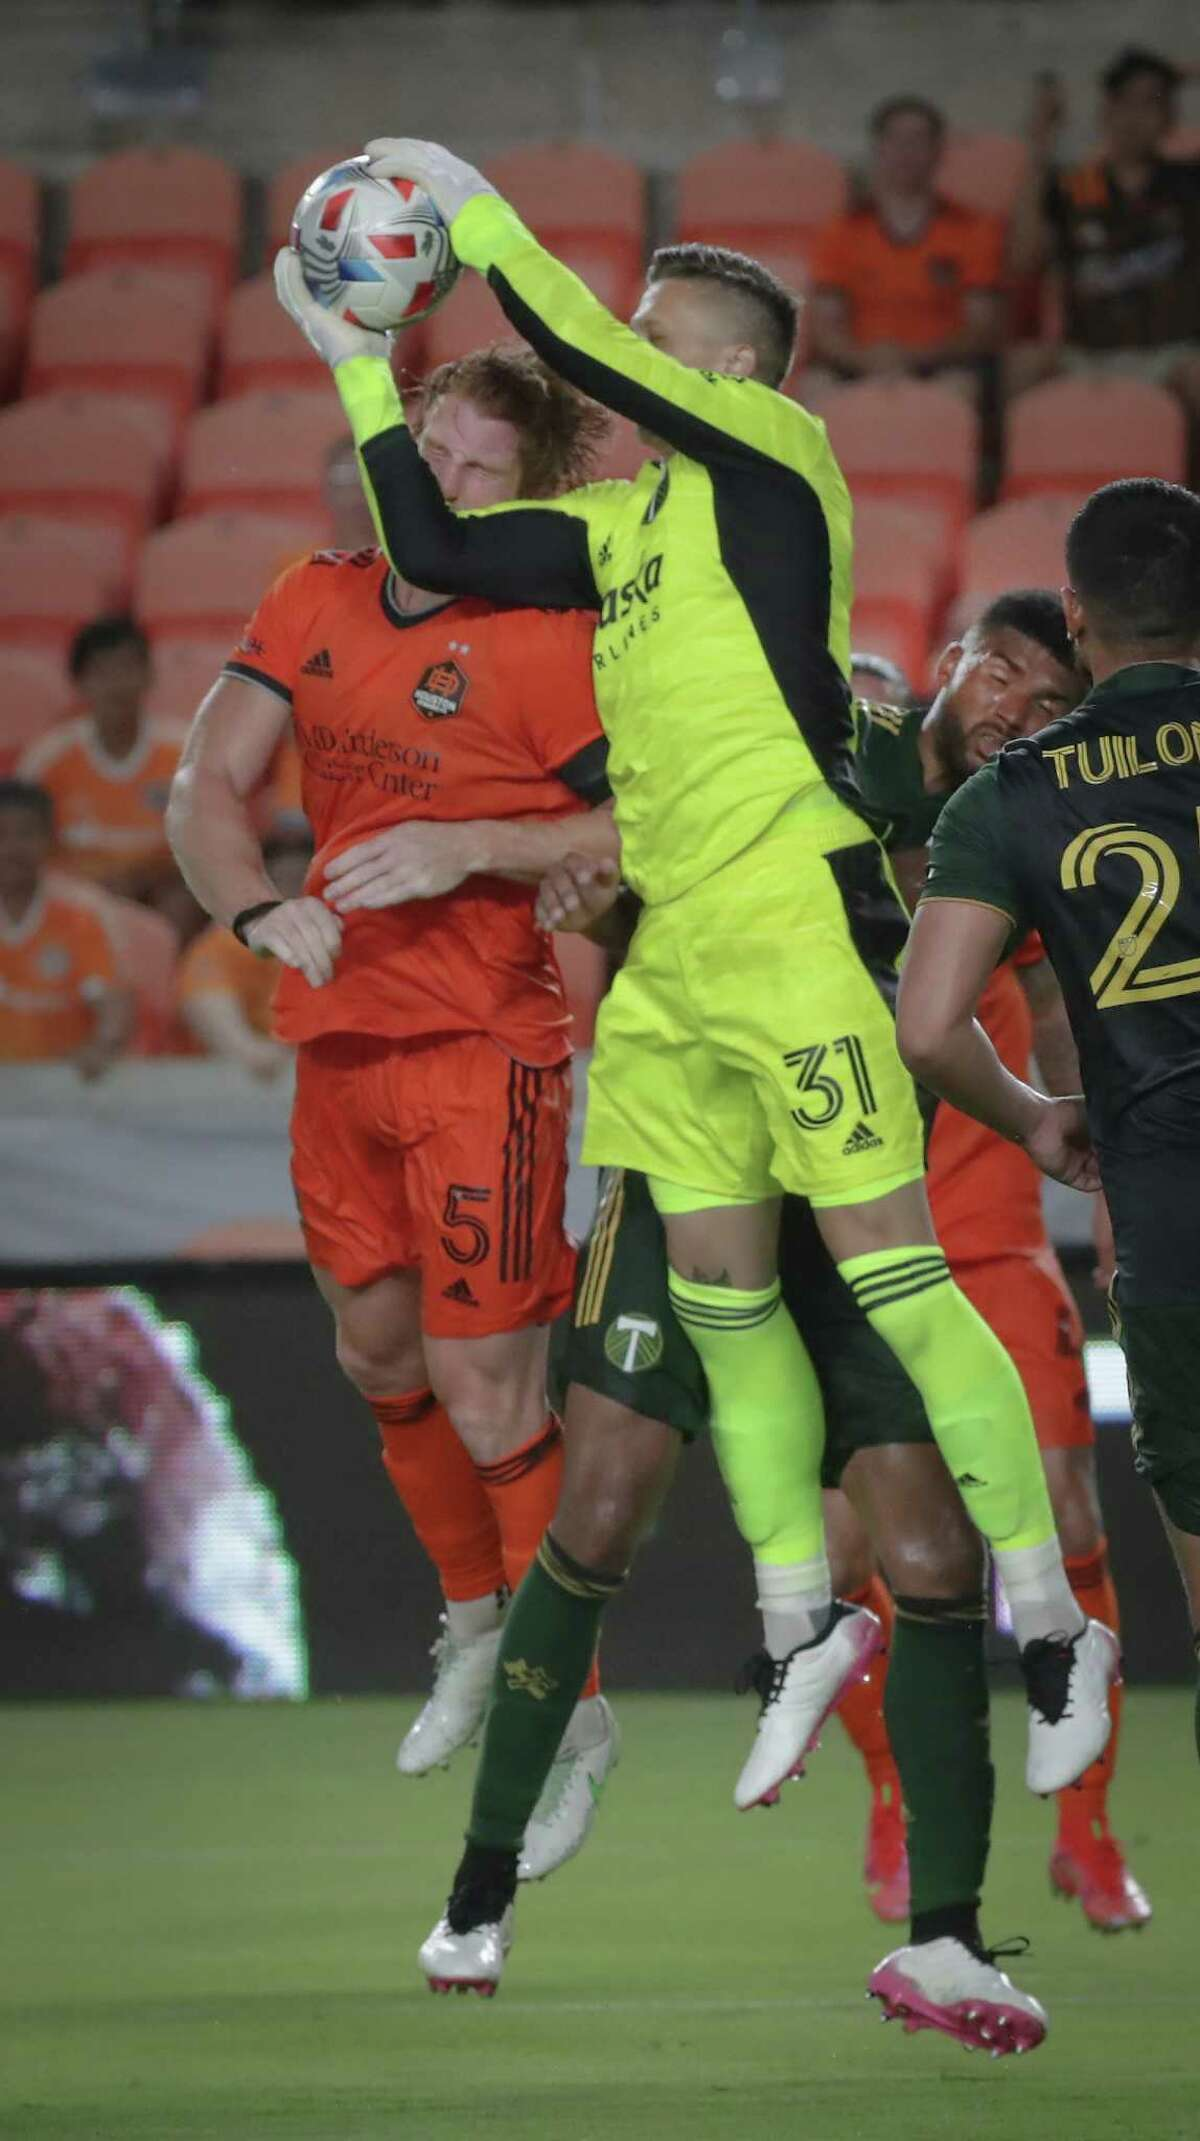 Portland Timbers goalkeeper Aljaz Ivacic grabs the ball before Houston Dynamo defender Tim Parker's header shot attempt during second half action at BBVA Compass Stadium on Wednesday, June 23, 2021, in Houston.